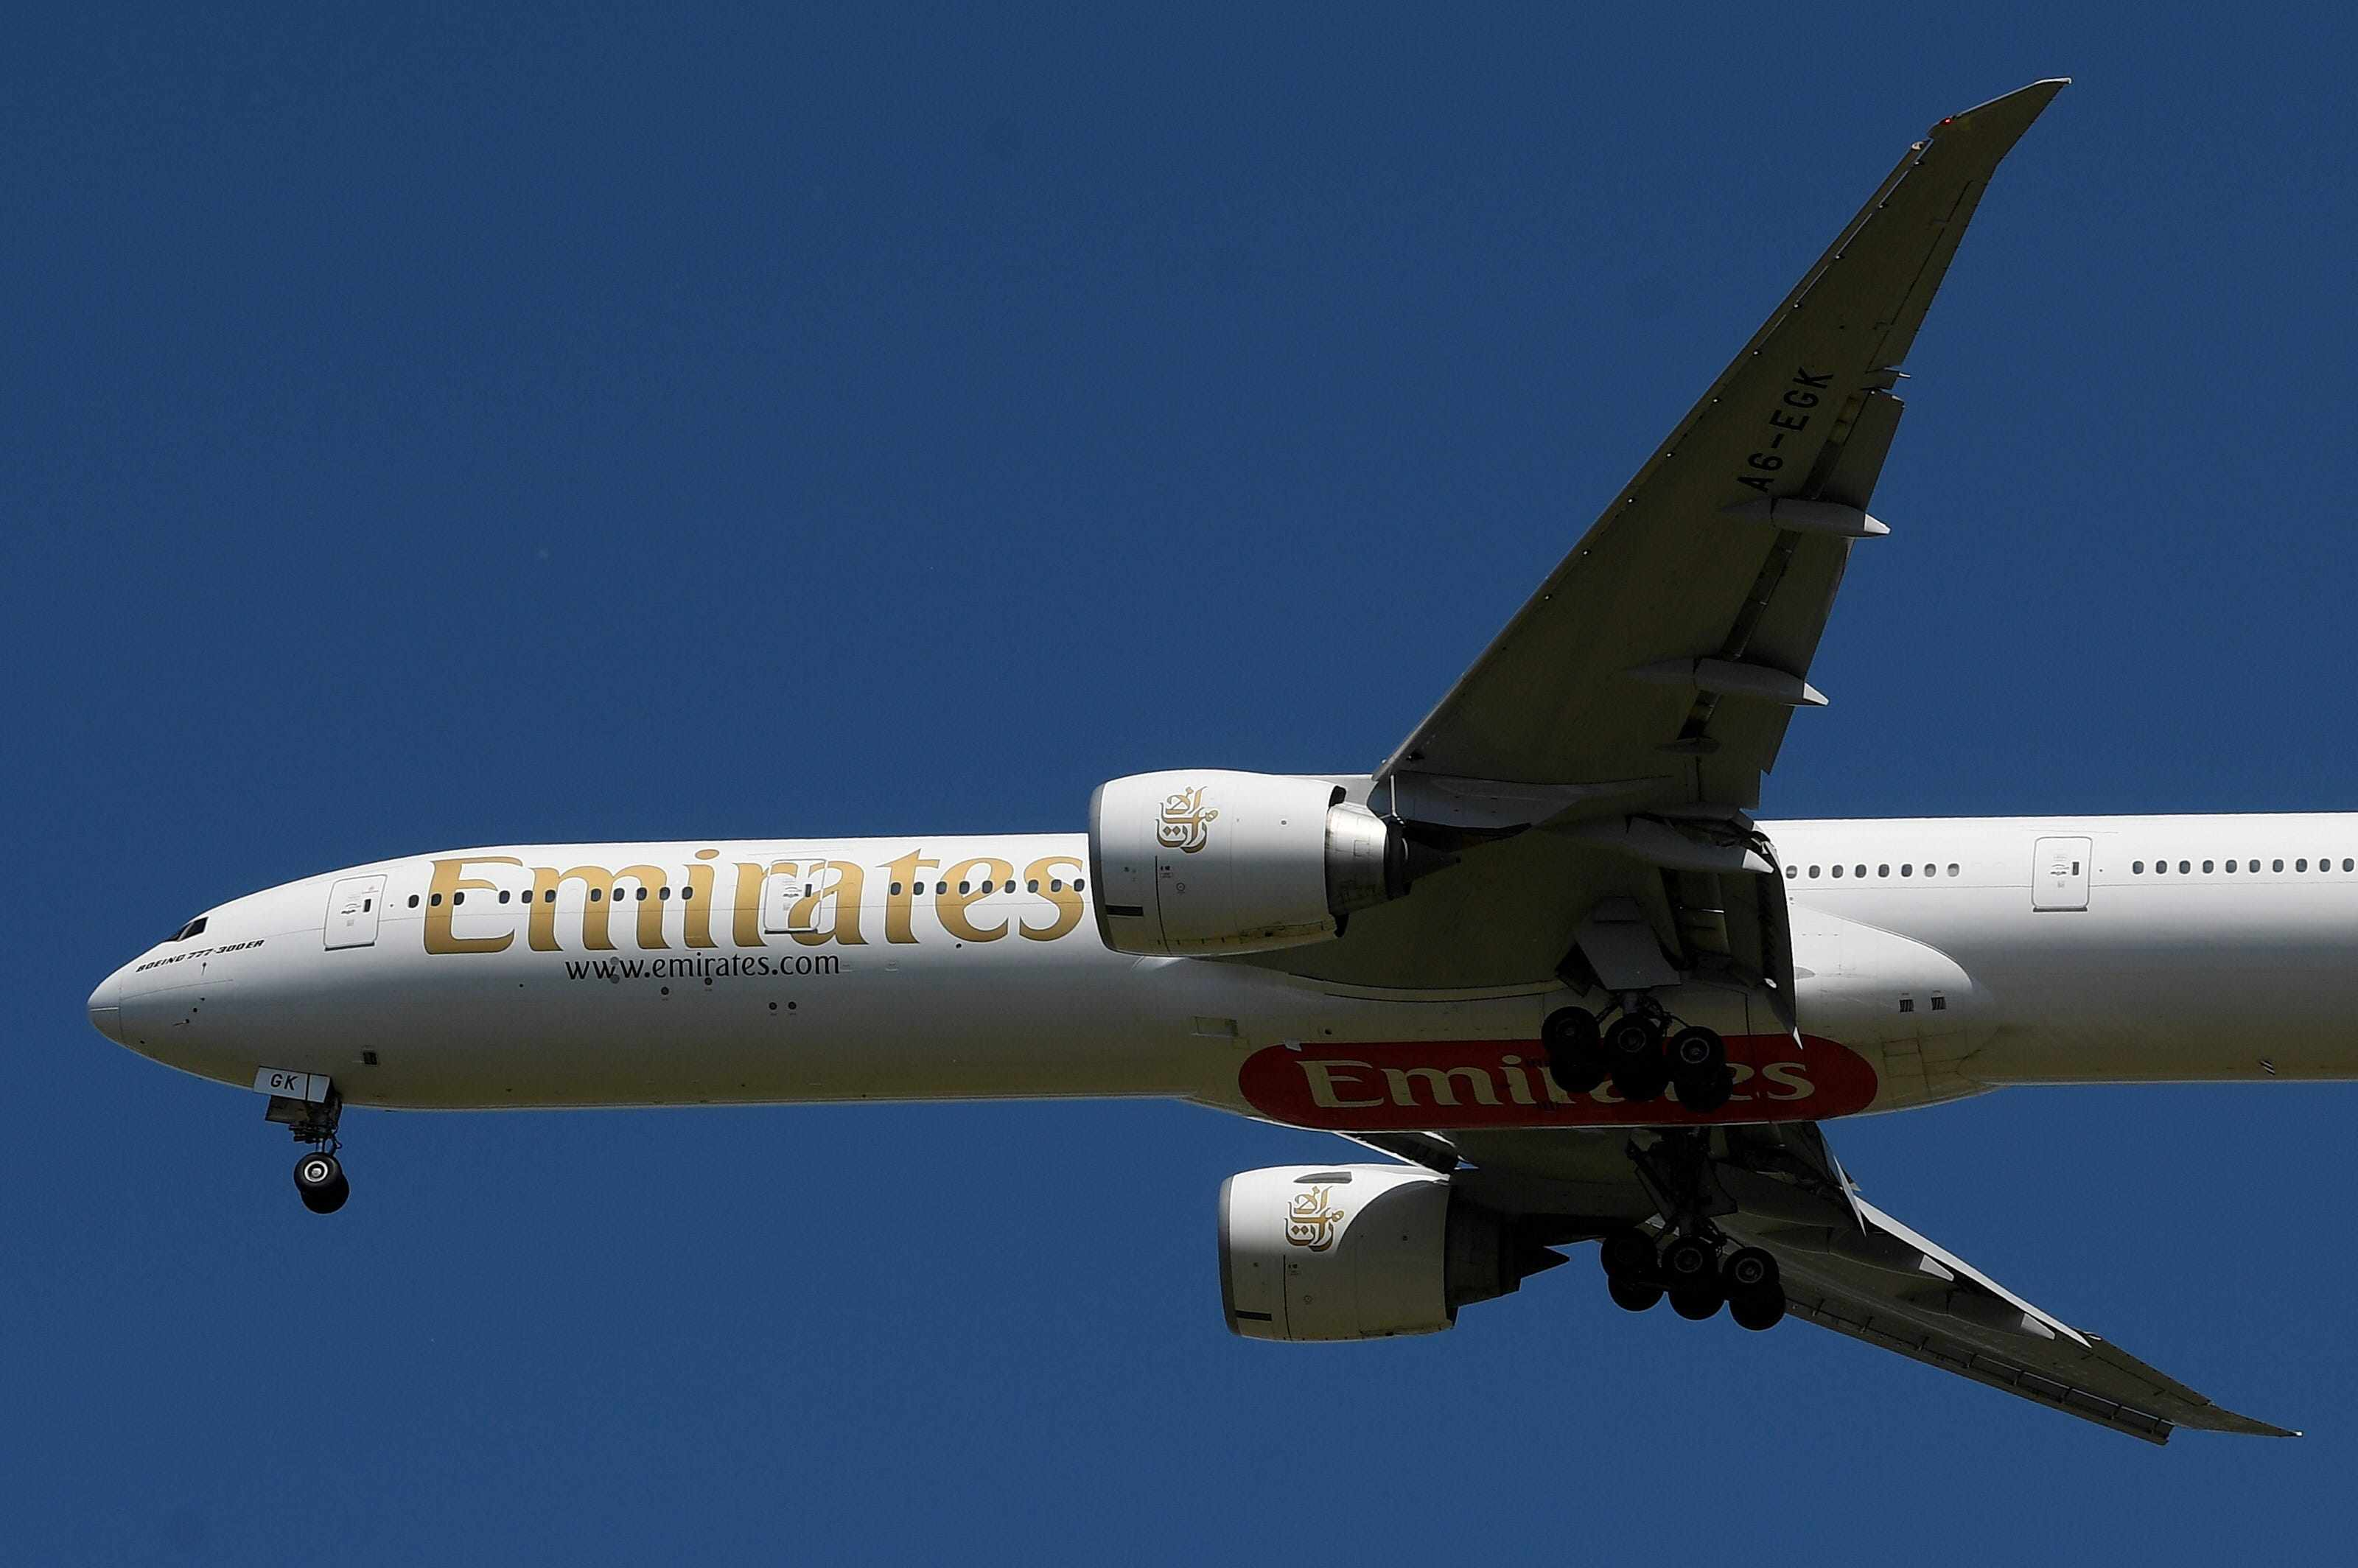 middle-east emirates airline credit glitzy